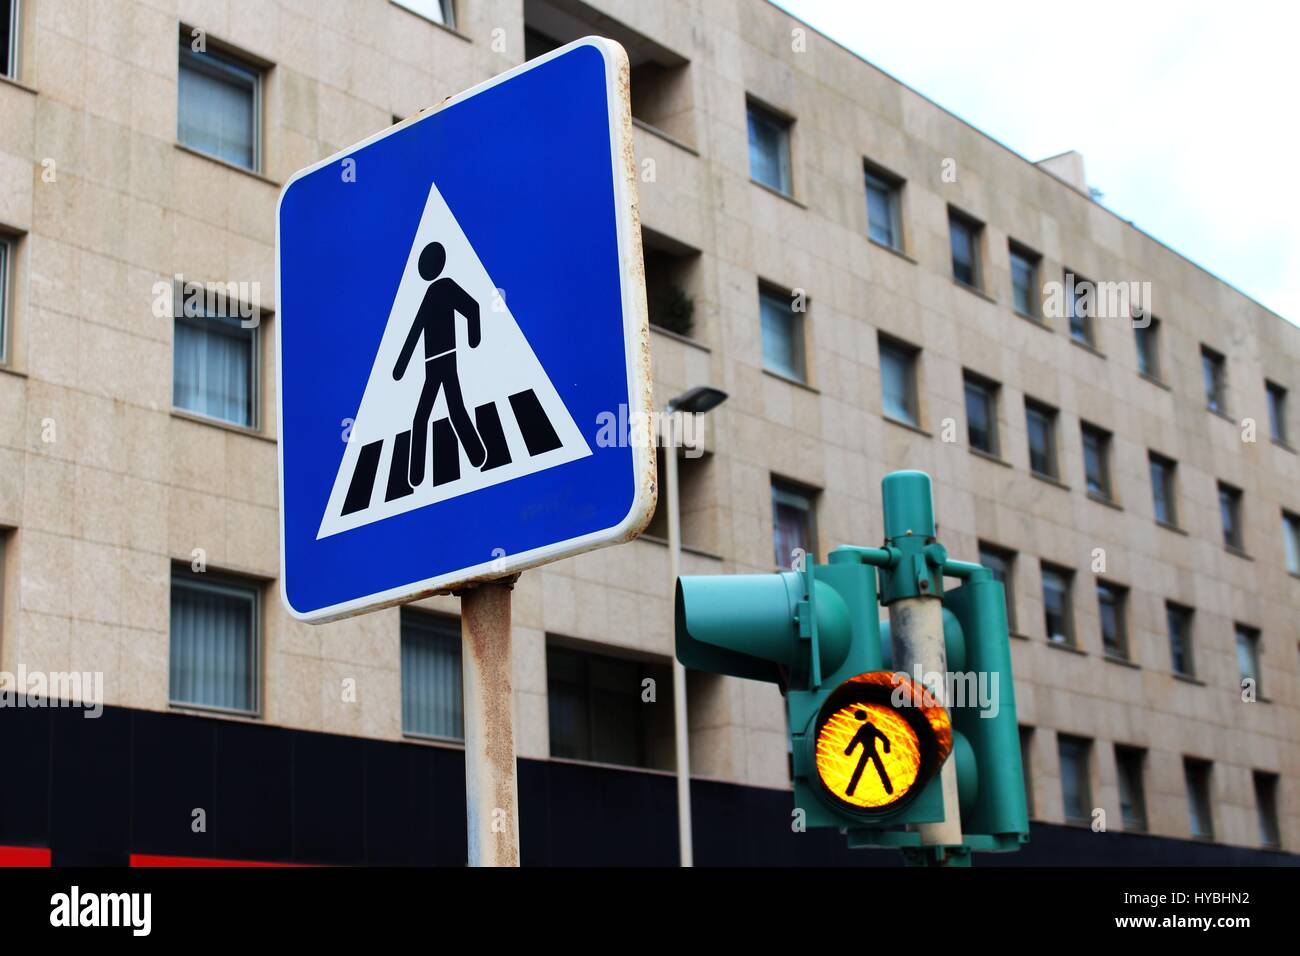 Two road signs for passersby before a treadmill at Roberto Ivens street in Matosinhos, Porto, Portugal. Stock Photo